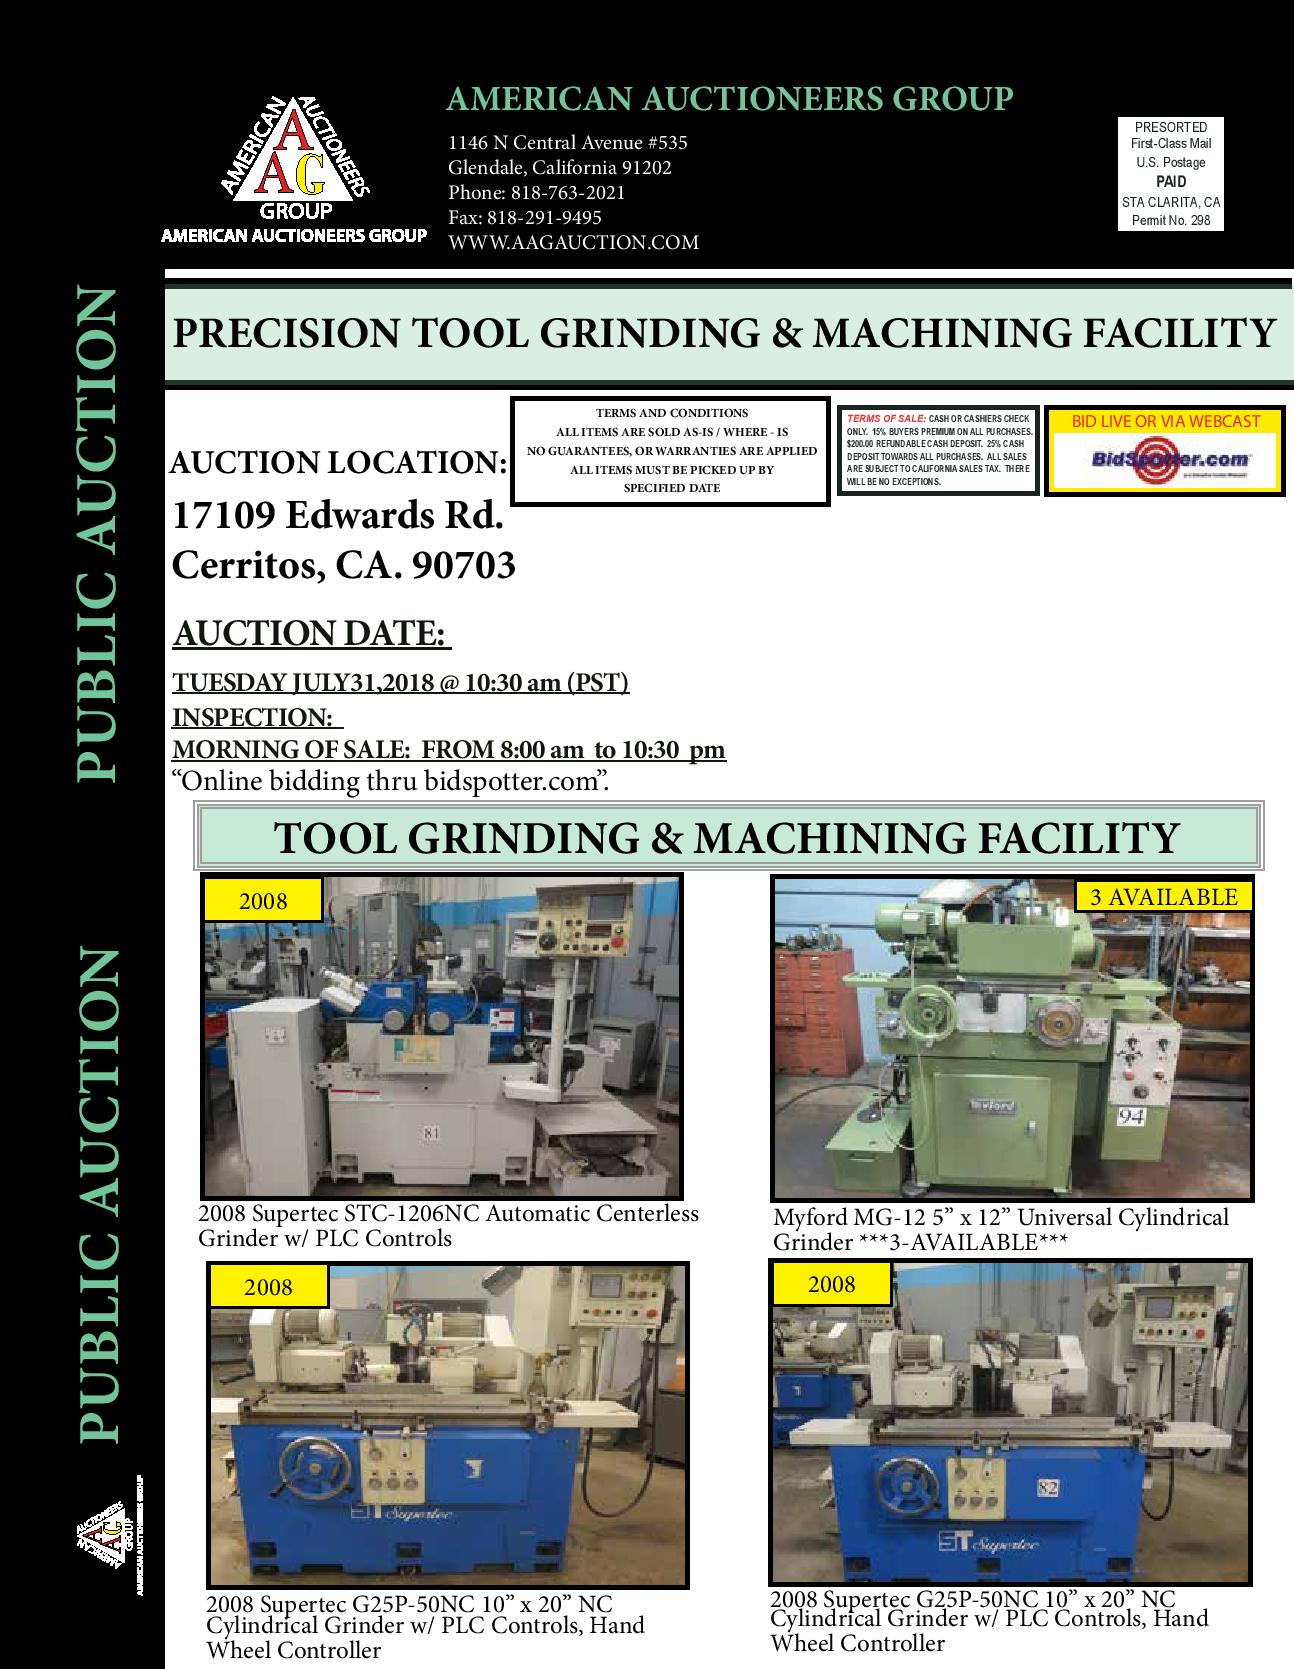 PRECISION TOOL GRINDING & MACHINING FACILITY